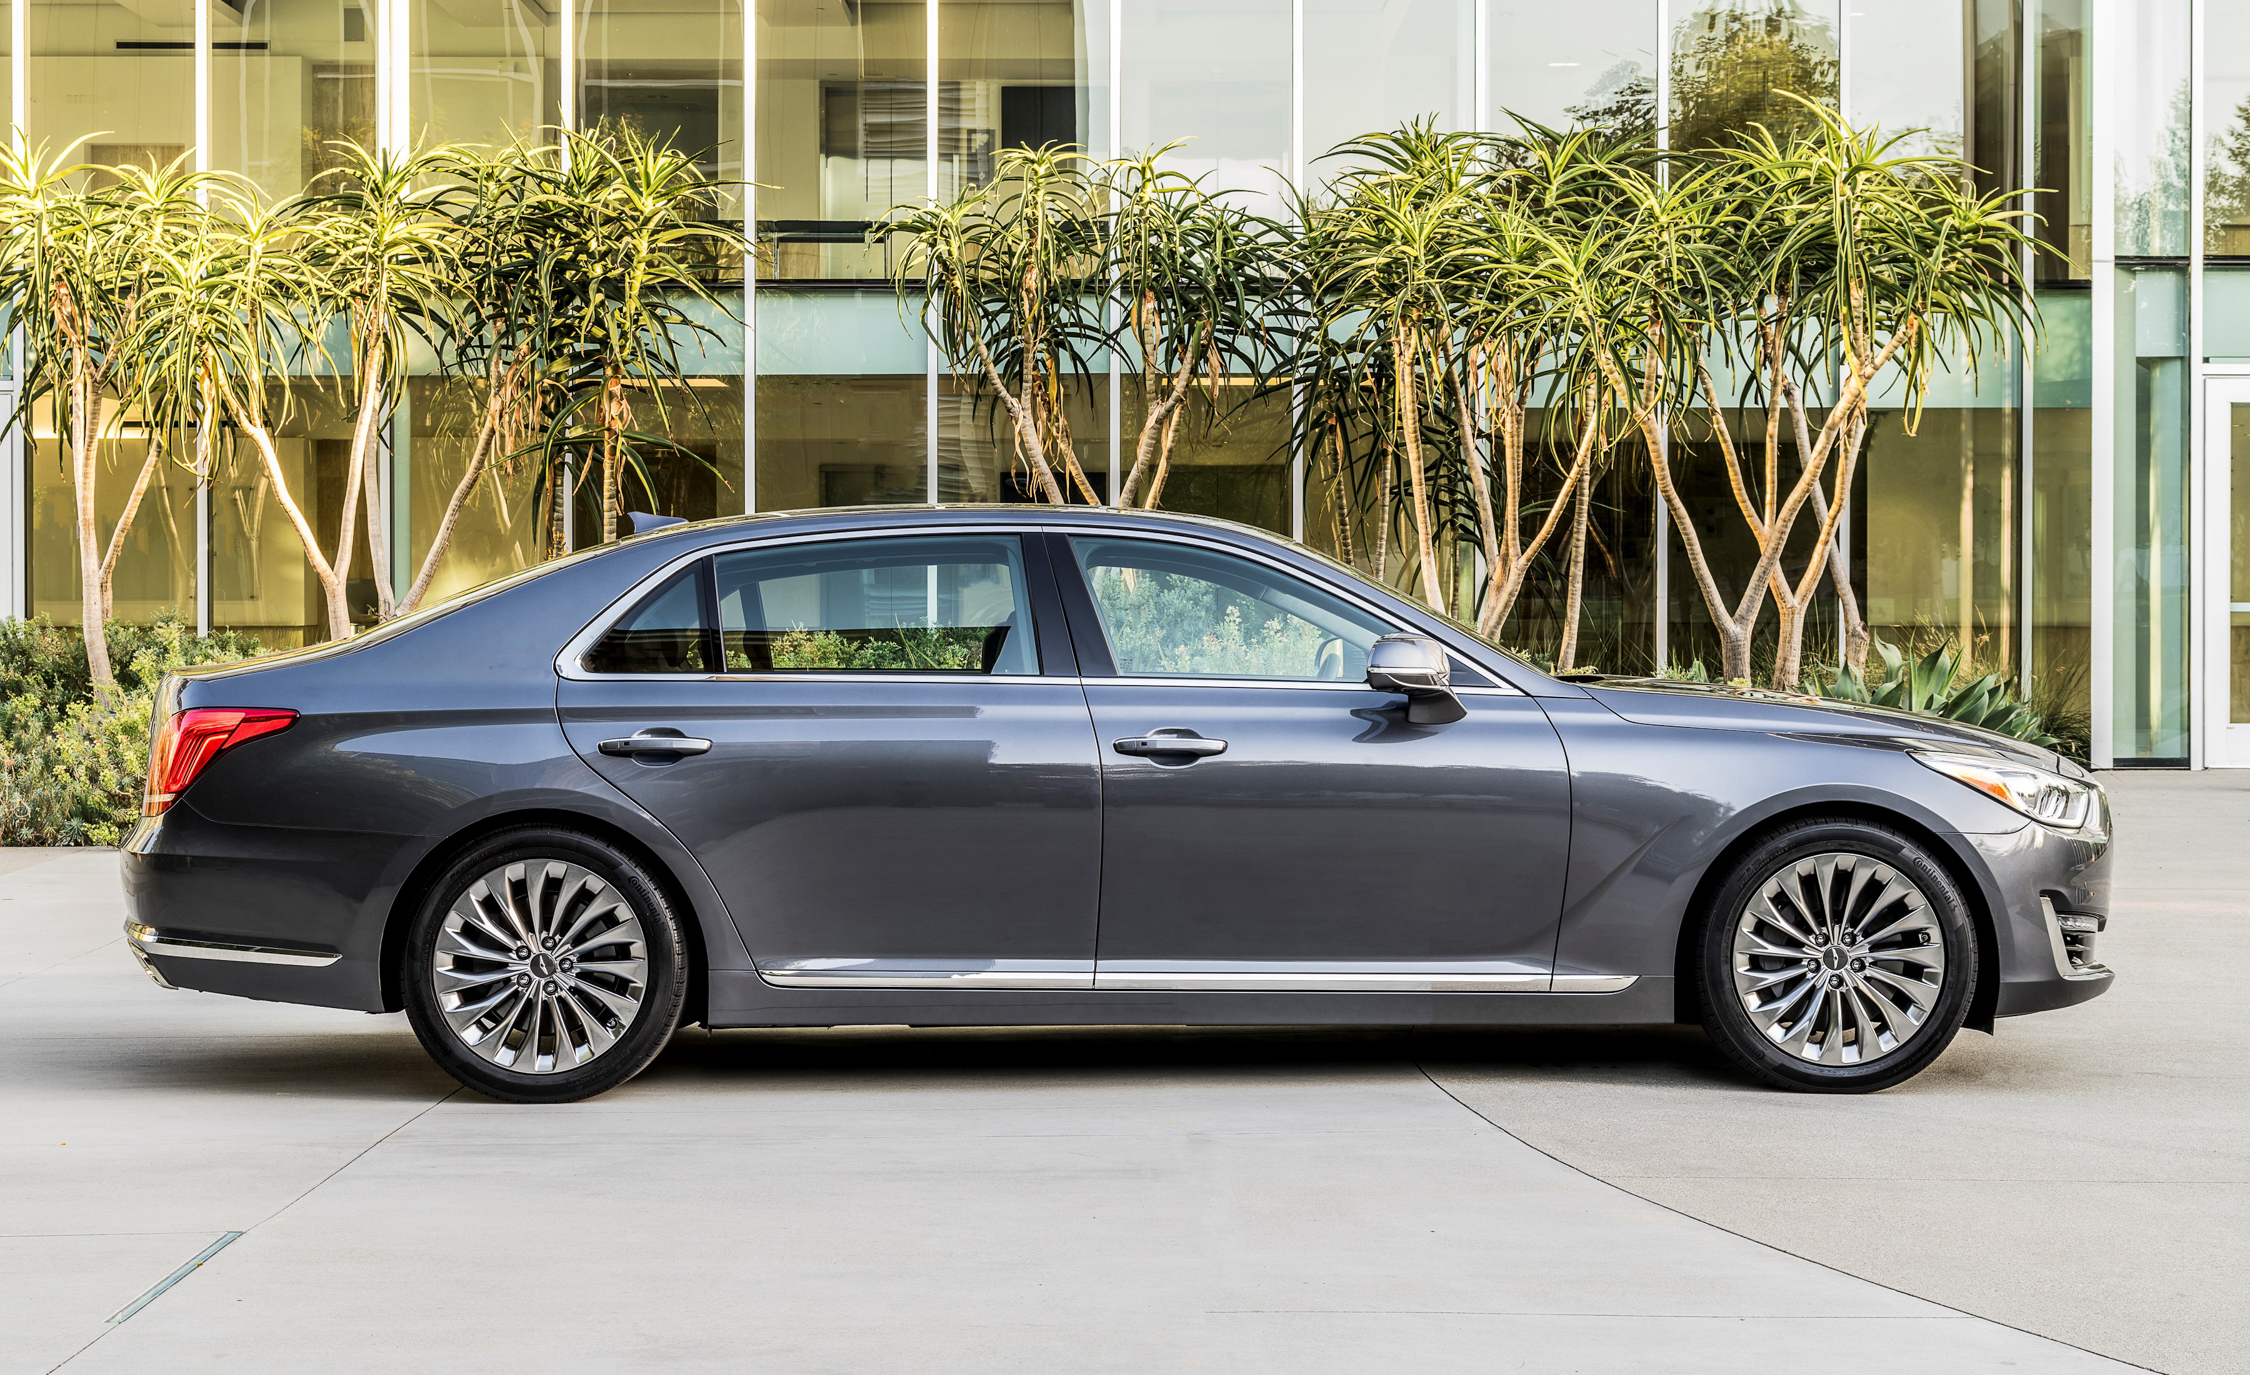 2017 Genesis G90 Exterior Side View (Photo 10 of 19)